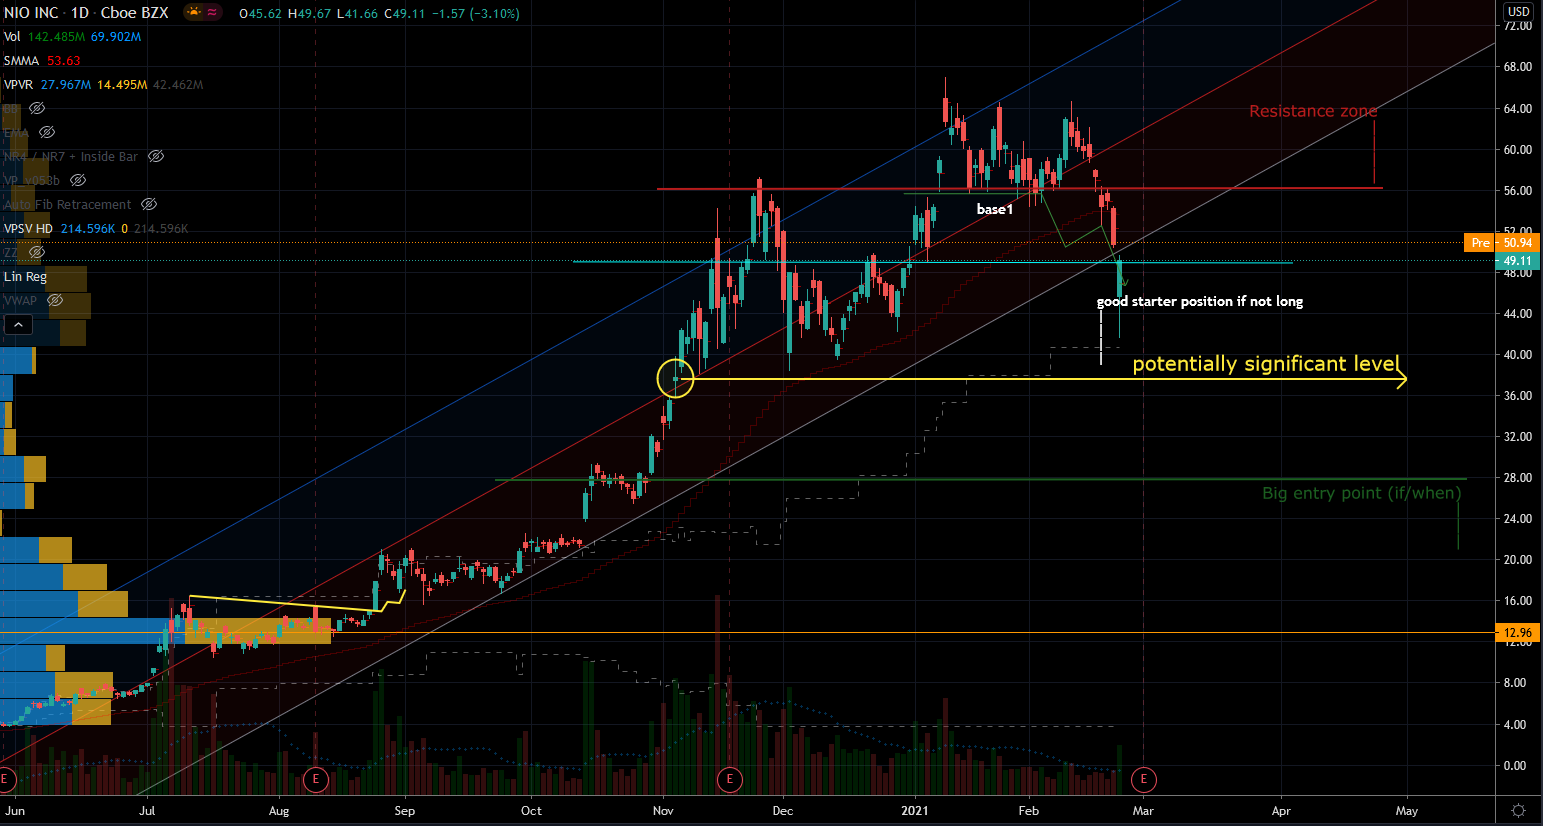 NIO Stock Chart Showing Important Levels